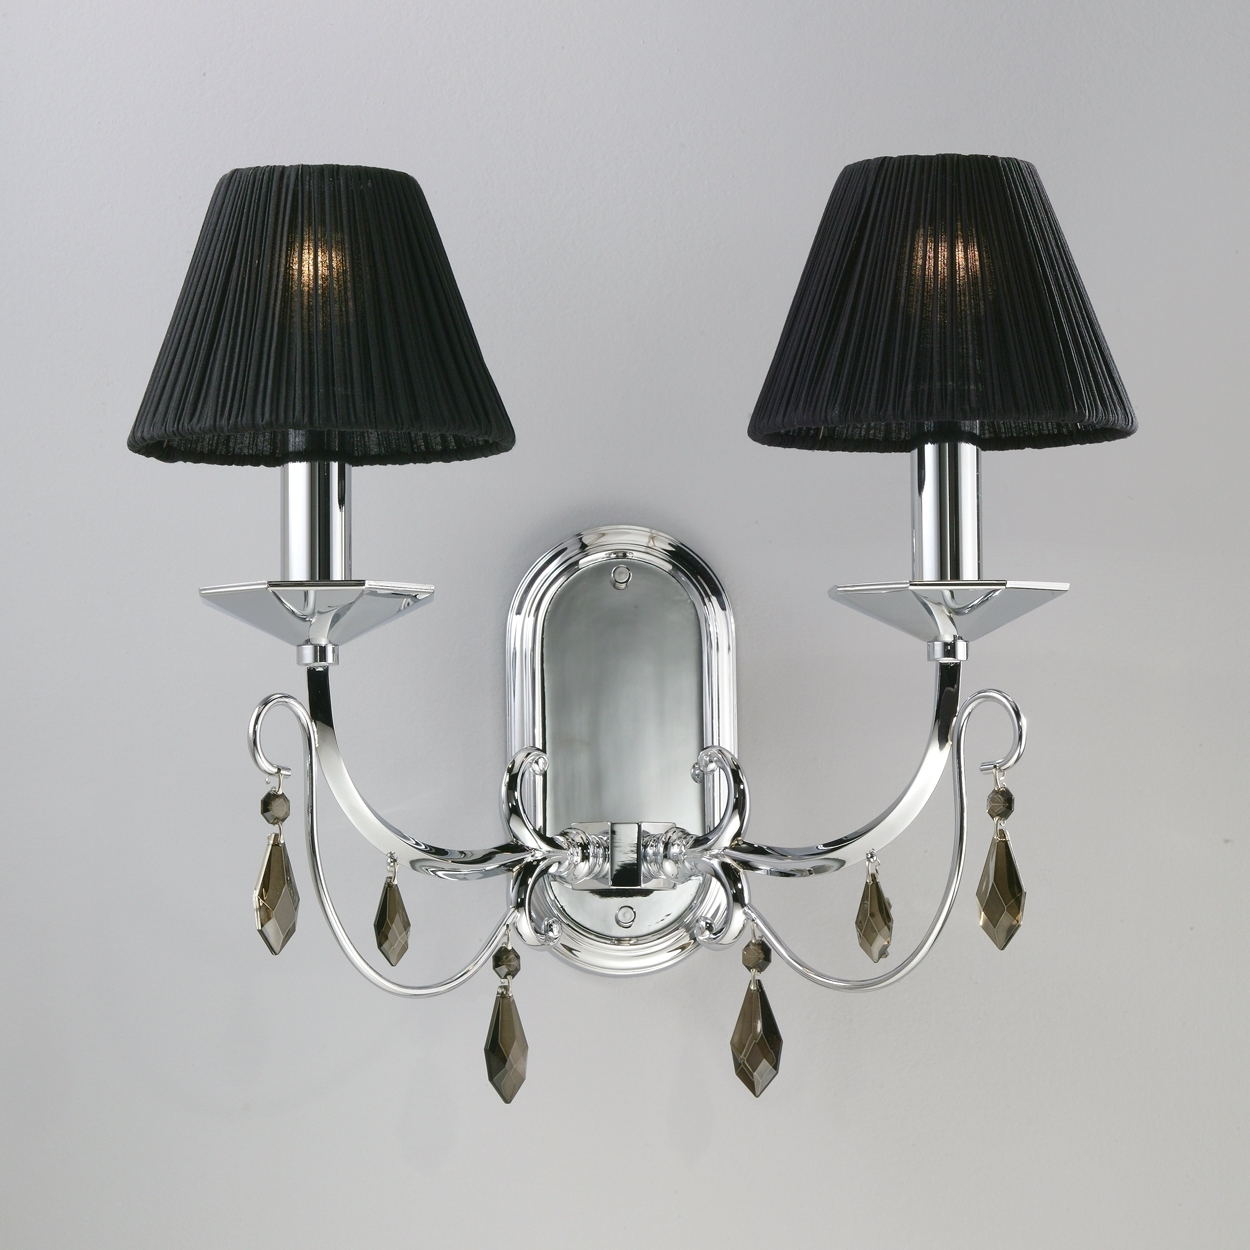 Black Clip On Lamp Shades – Lamp Design Ideas Regarding Well Known Chandelier Lamp Shades Clip On (View 8 of 20)